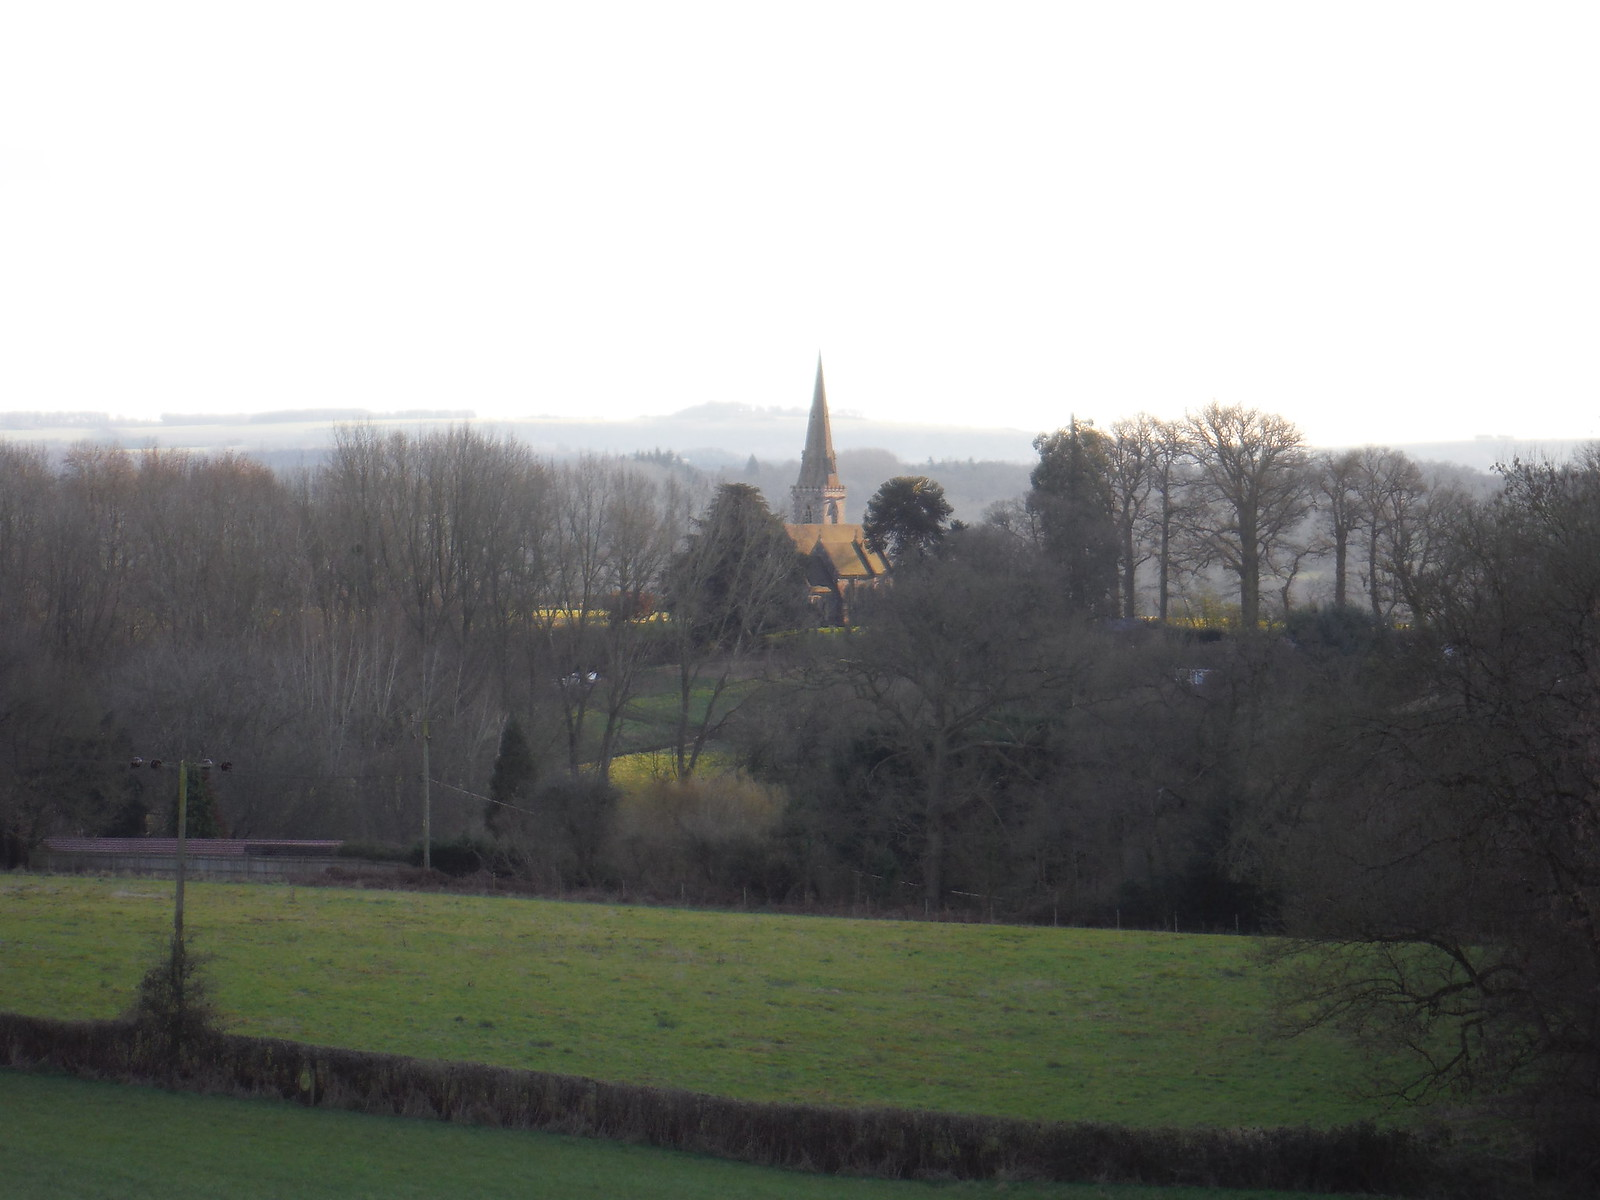 Midgham Church from Descent from Wootten's SWC Walk 117 Aldermaston to Woolhampton (via Stanford Dingley)